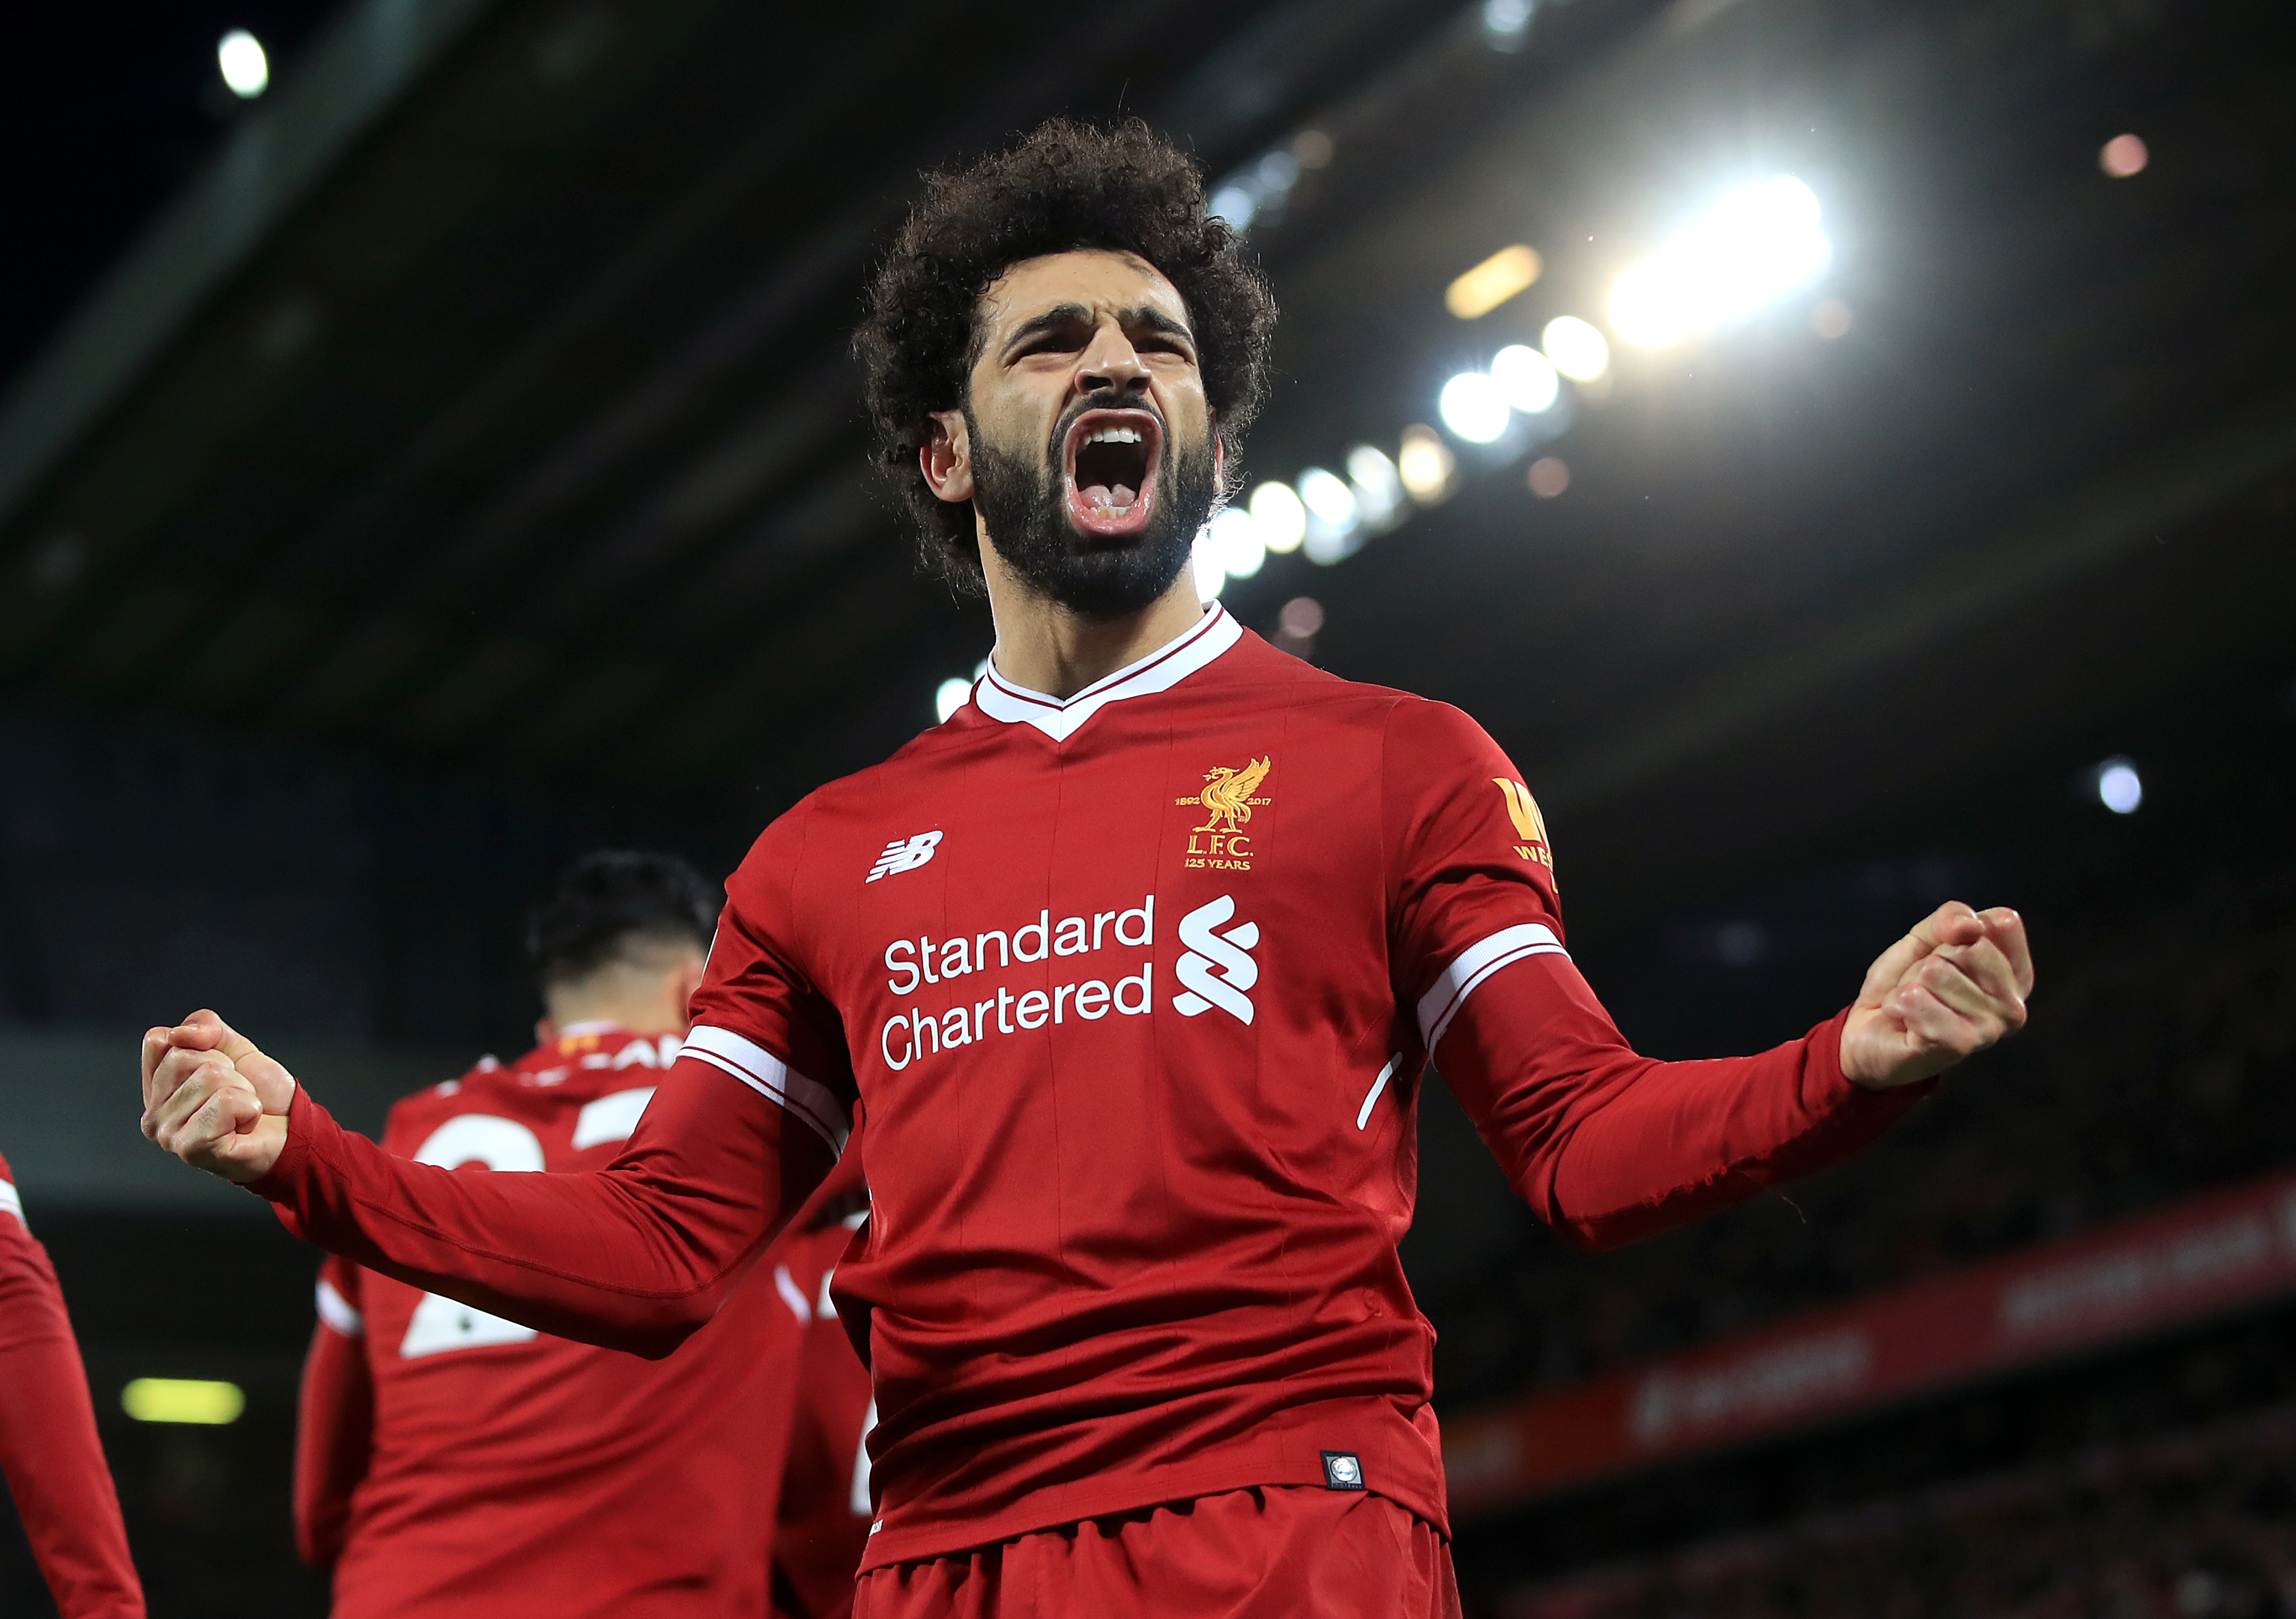 Liverpool's Mohamed Salah (PA Wire)